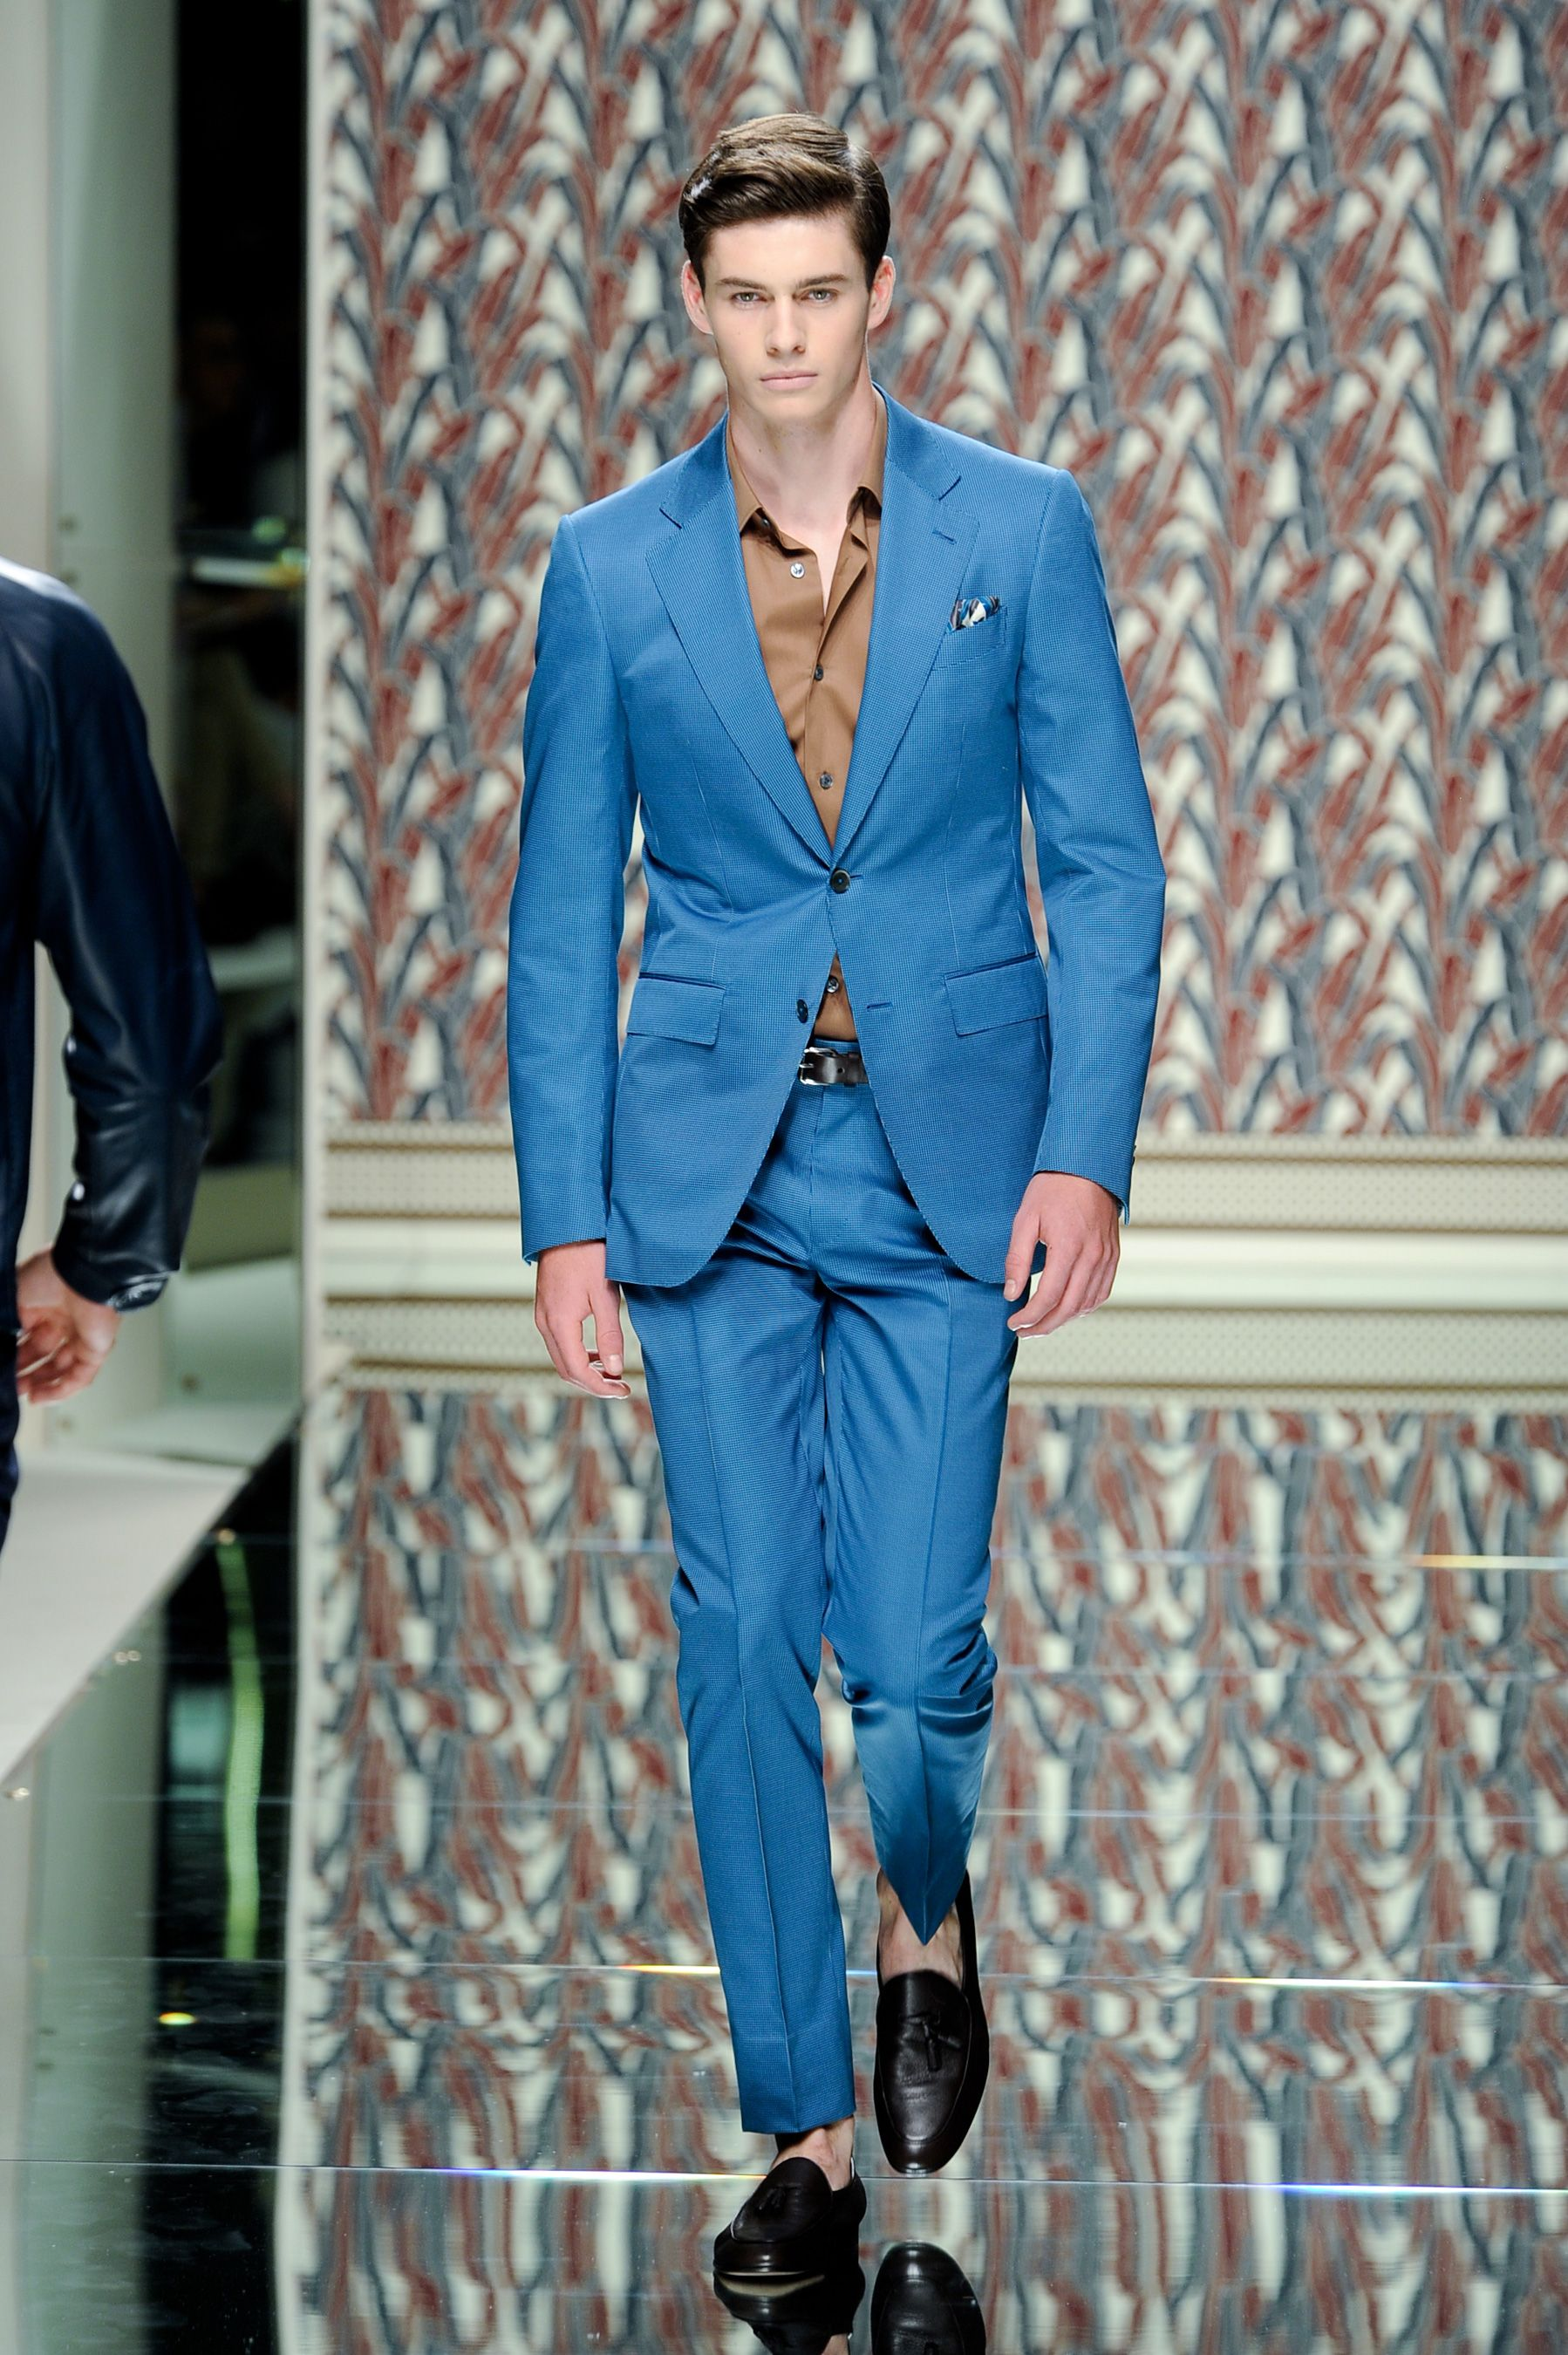 From my favorite fashion house Ermenegildo Zegna:  Once again, color mixing by Zegna looks so natural!  XD